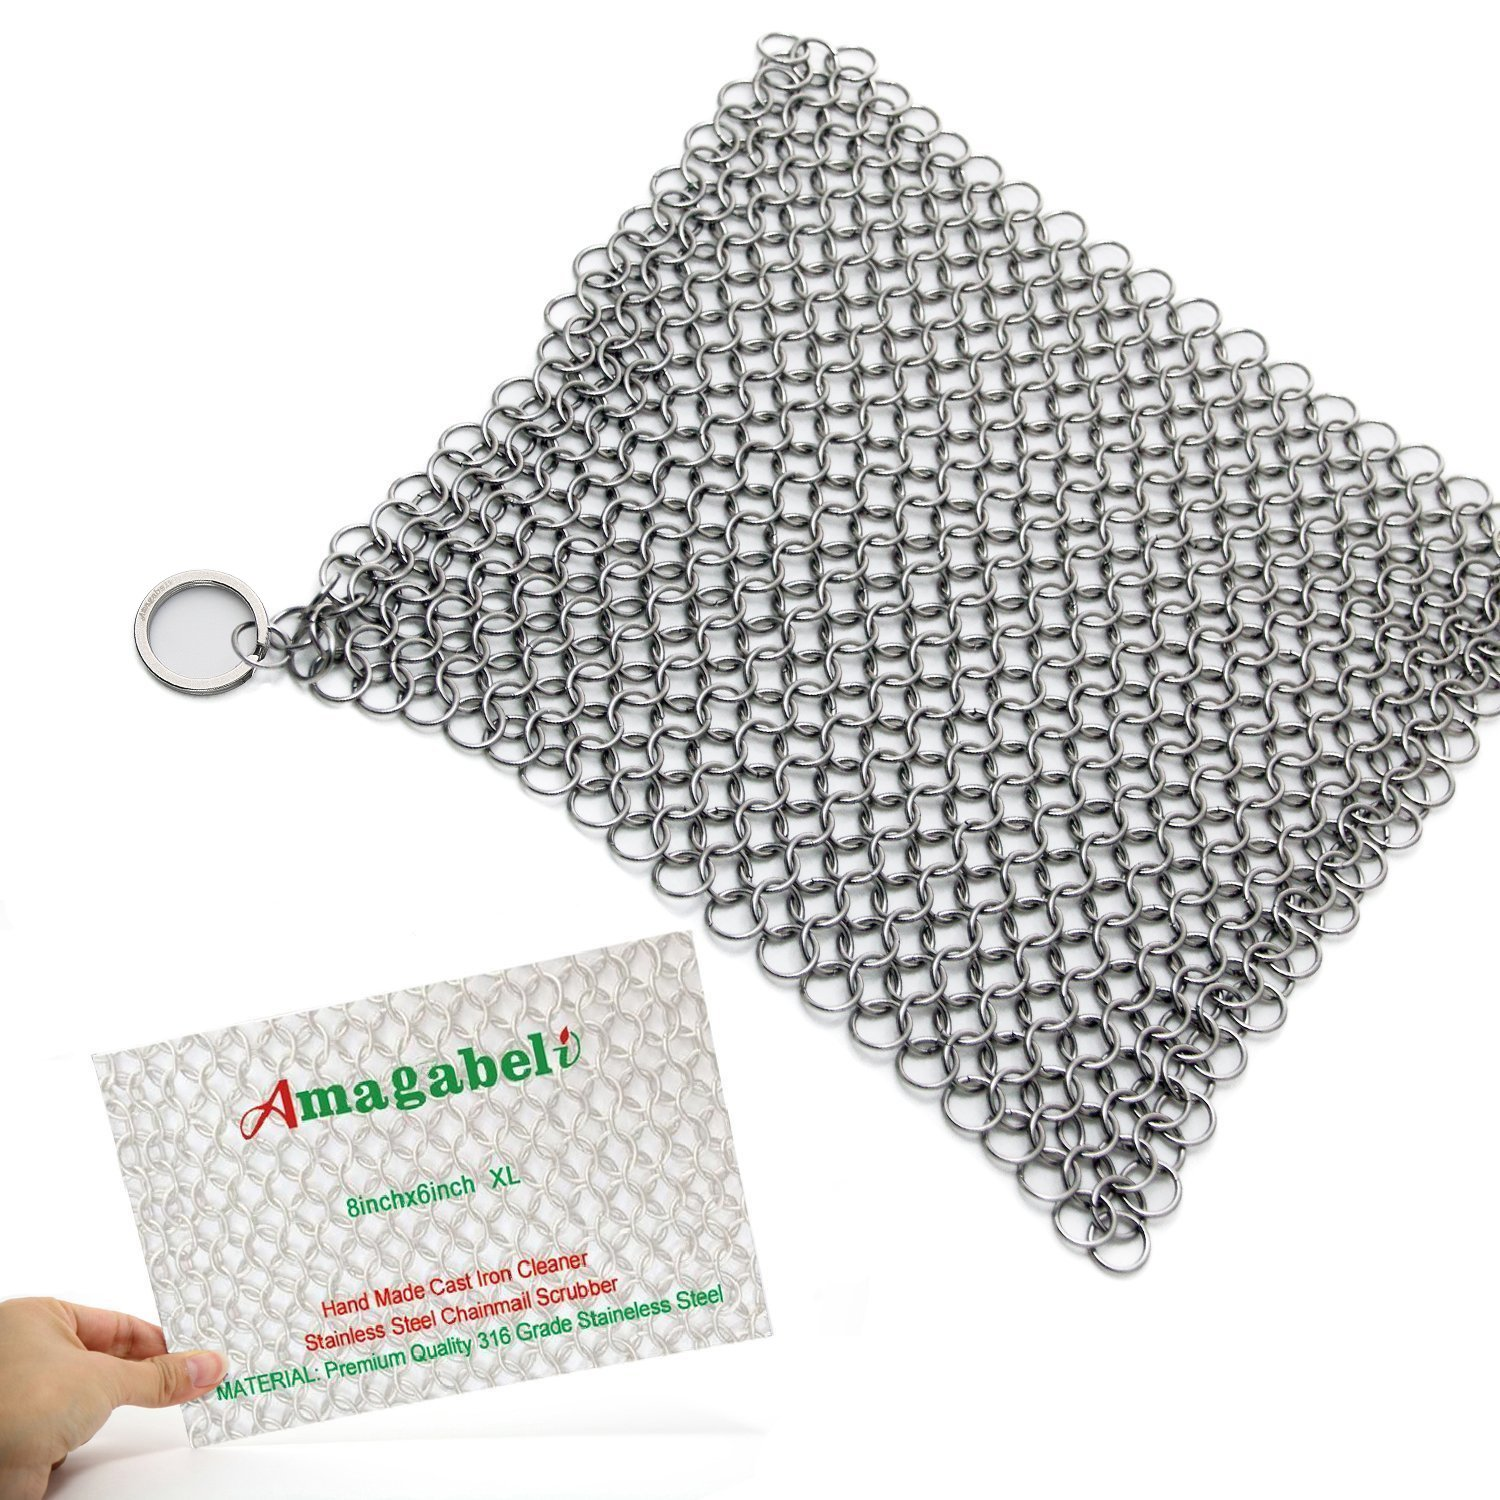 AMAGABELI GARDEN & HOME 8''x6'' Stainless Steel Cast Iron Cleaner 316L Chainmail Scrubber for Cast Iron Pan Pre-Seasoned Pan Dutch Ovens Waffle Iron Pans Scraper Cast Iron Grill Skillet Scraper by AMAGABELI GARDEN & HOME